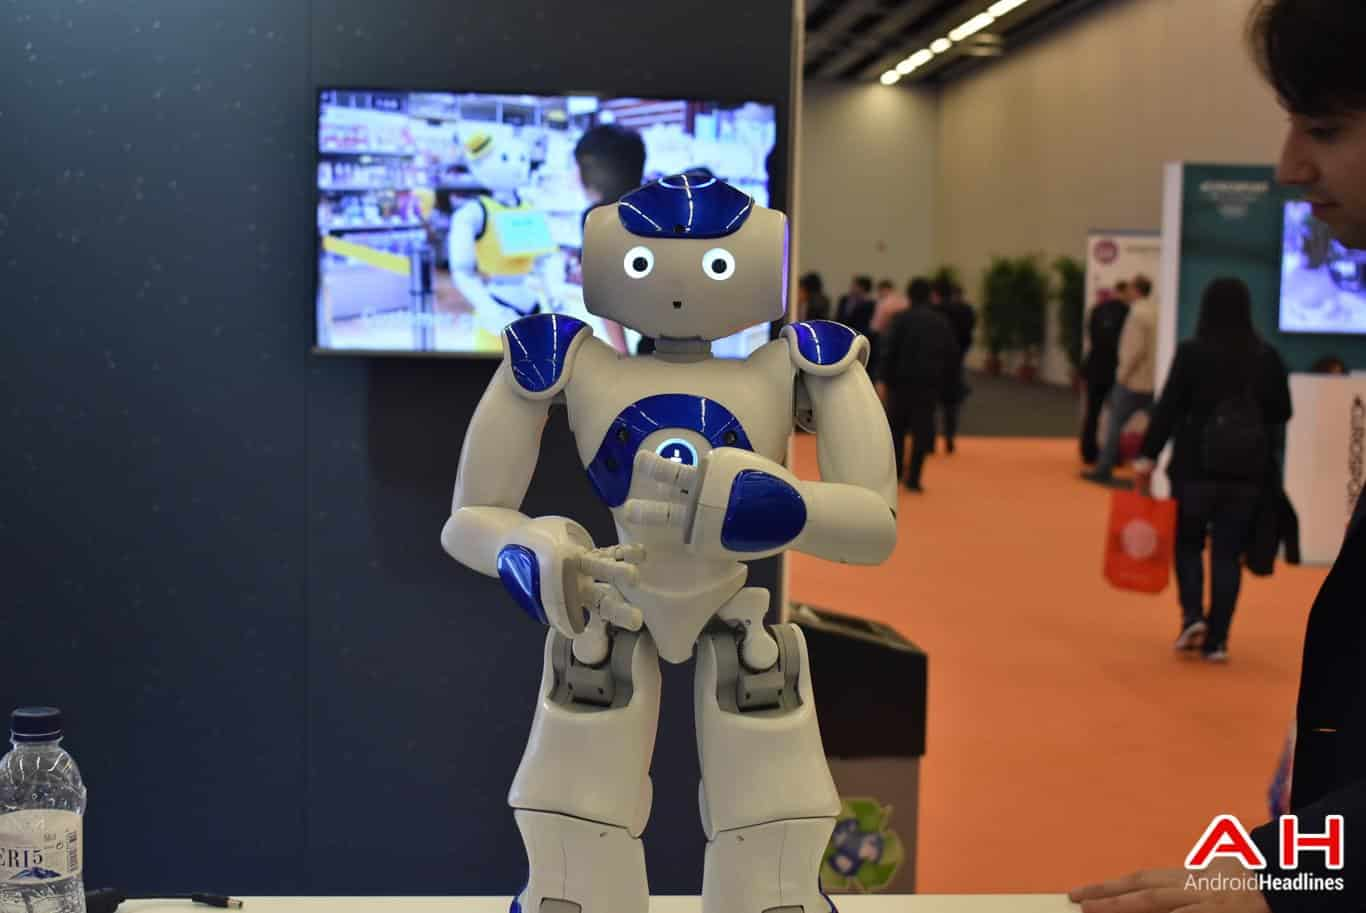 SoftBank Pepper Robot AH 17